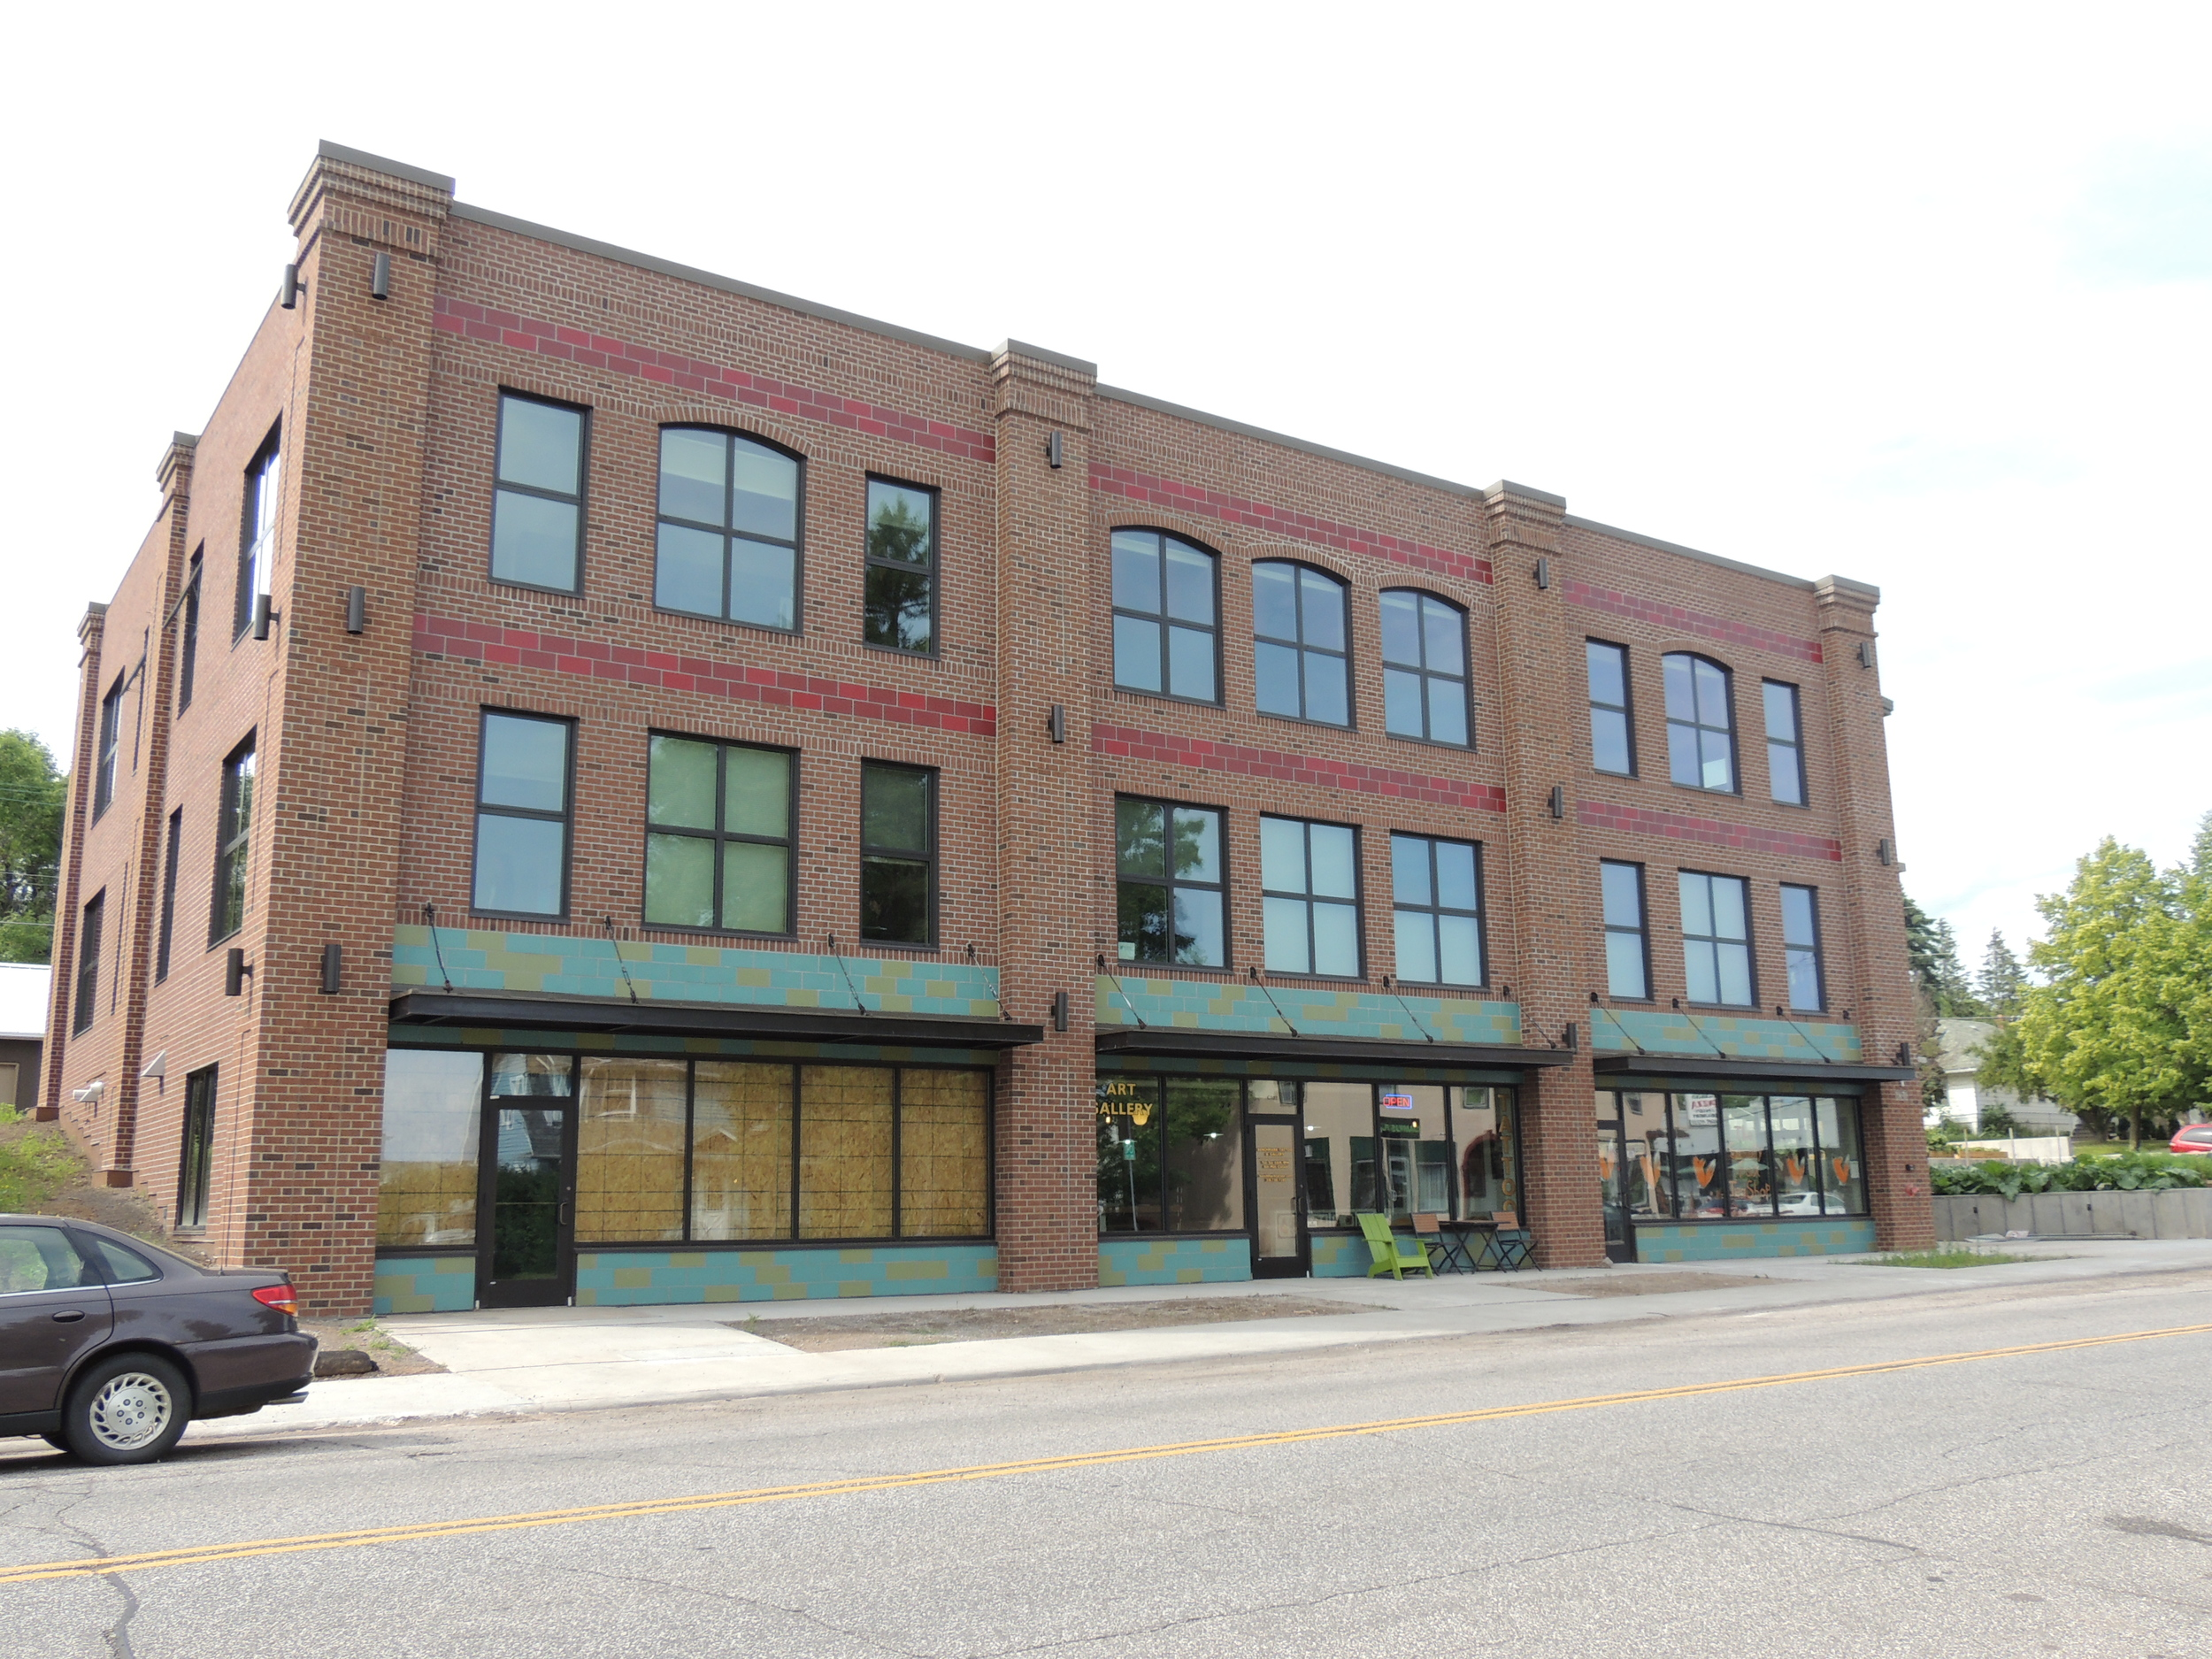 Chester Gardens was recently finished on the corner of 8th Street and North 19th Avenue East